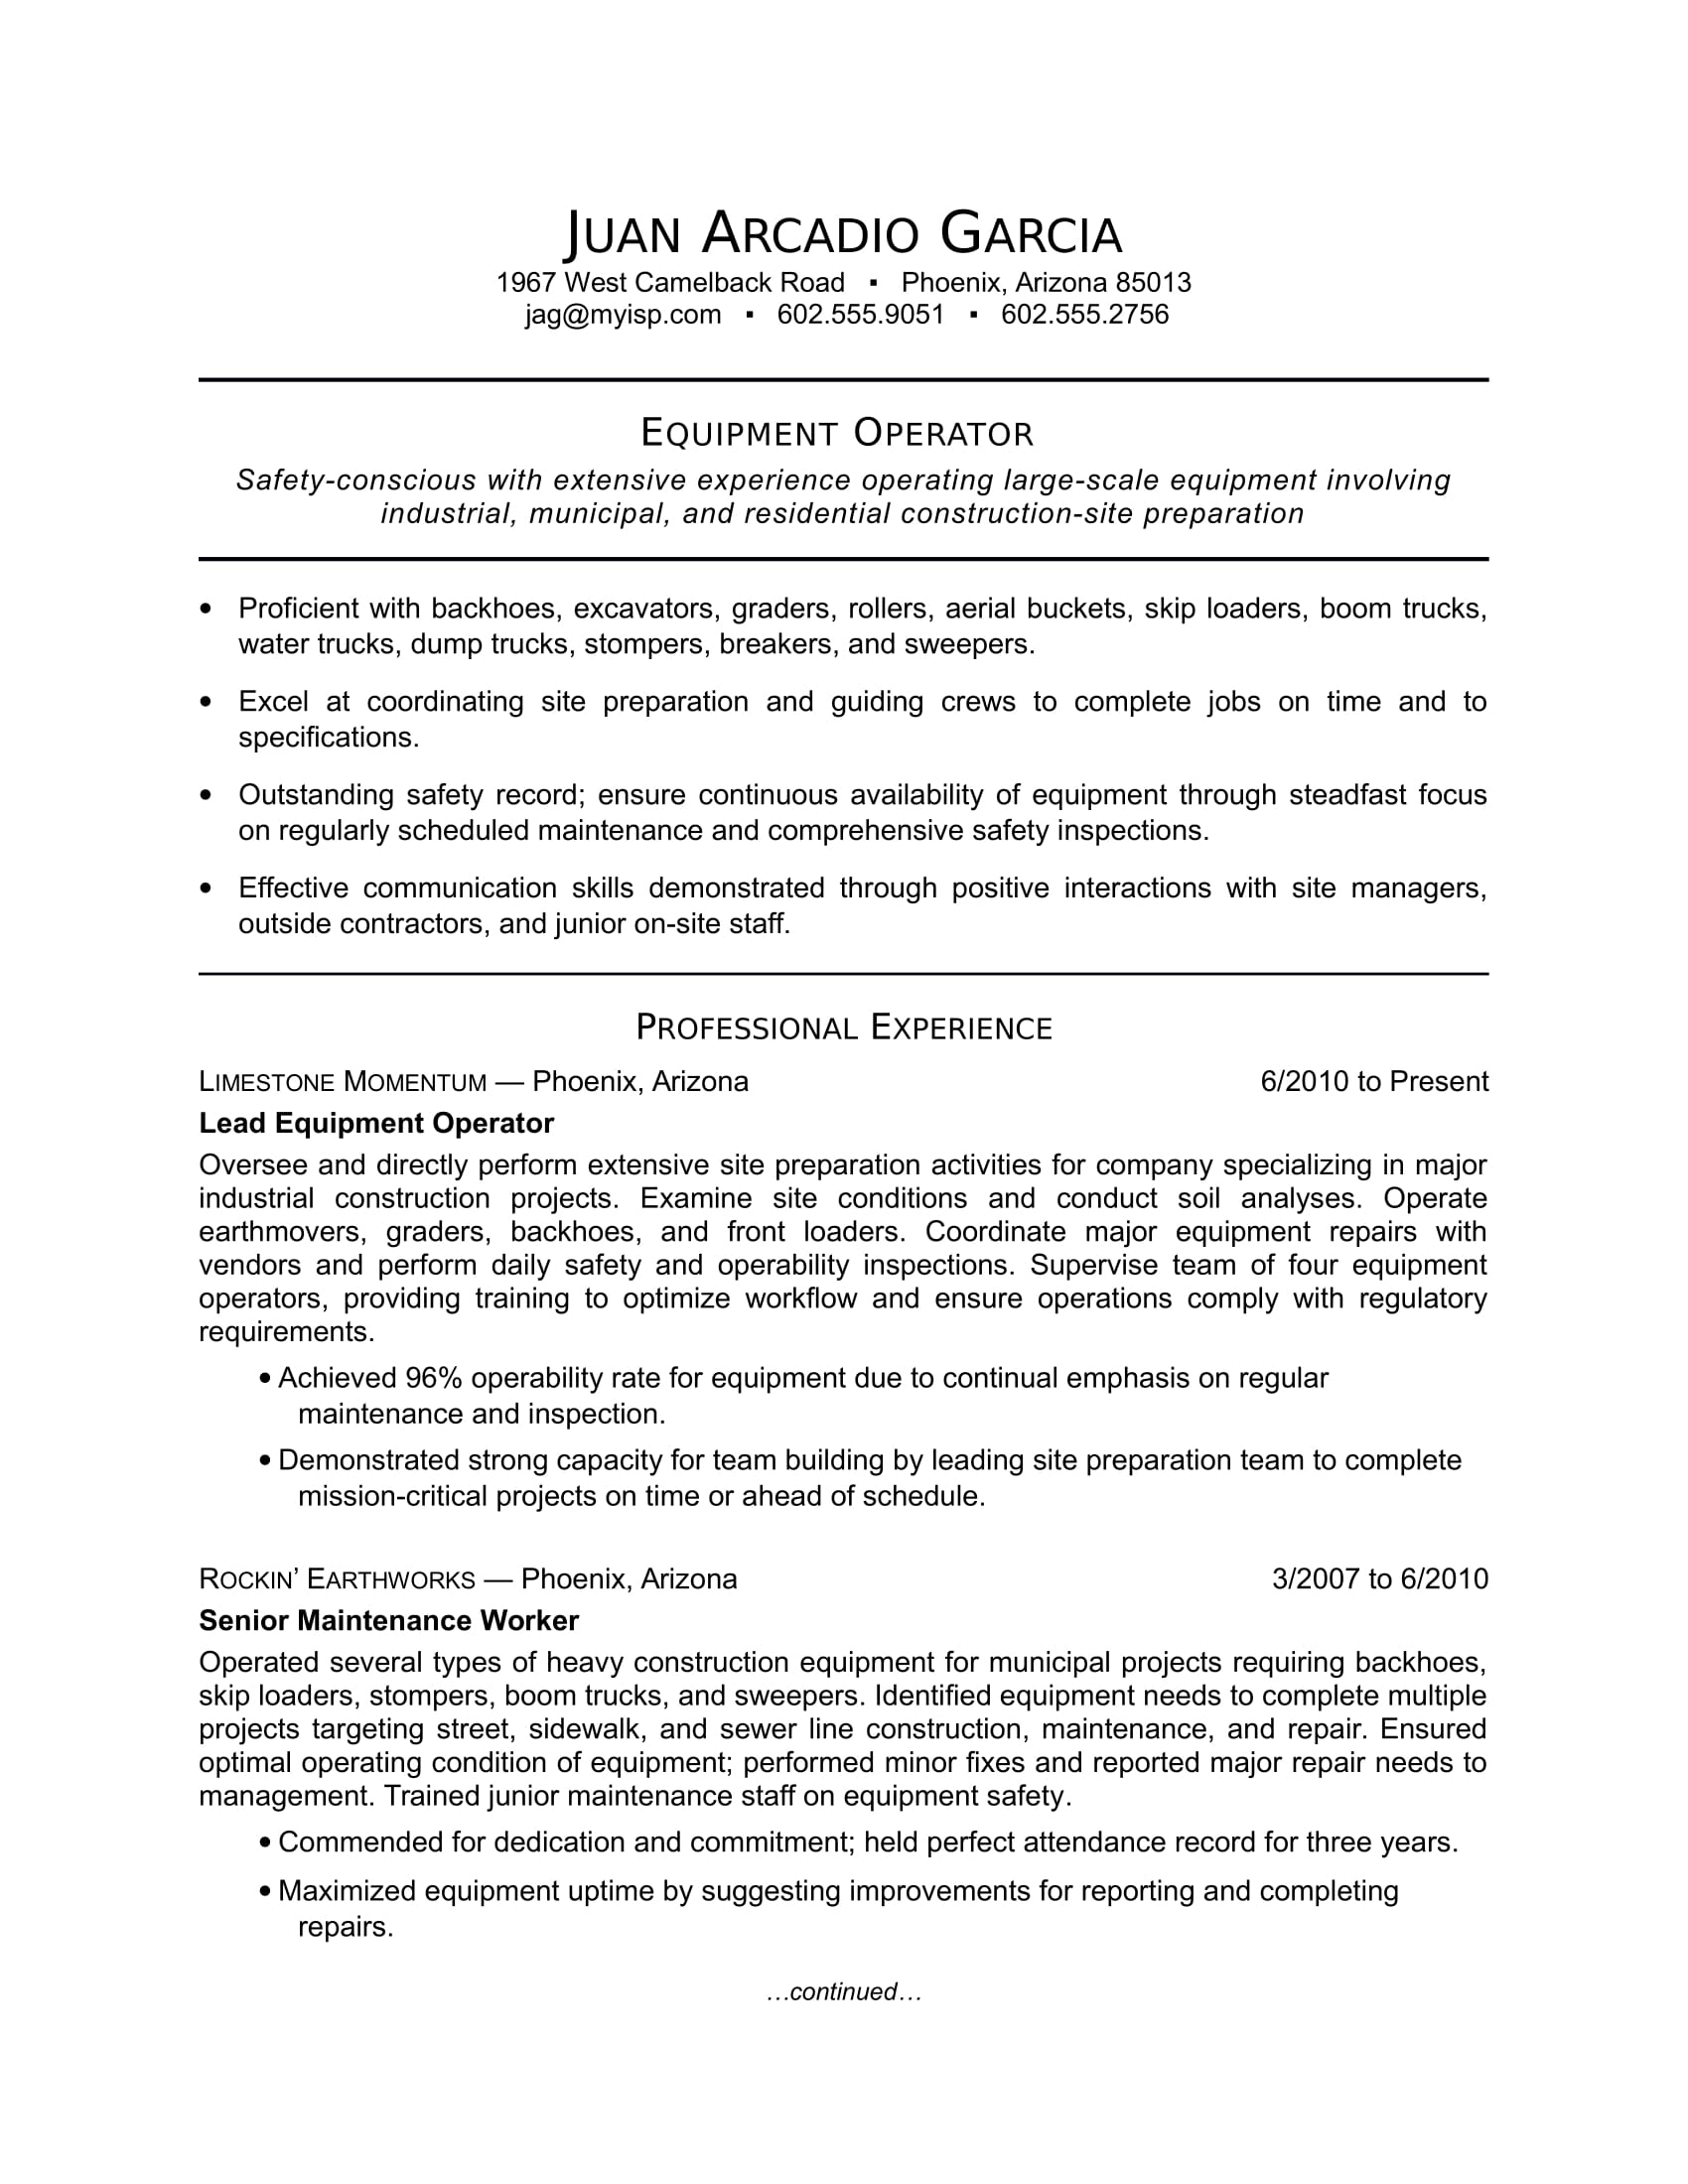 Sample Resume For An Equipment Operator  Sample Skills Resume